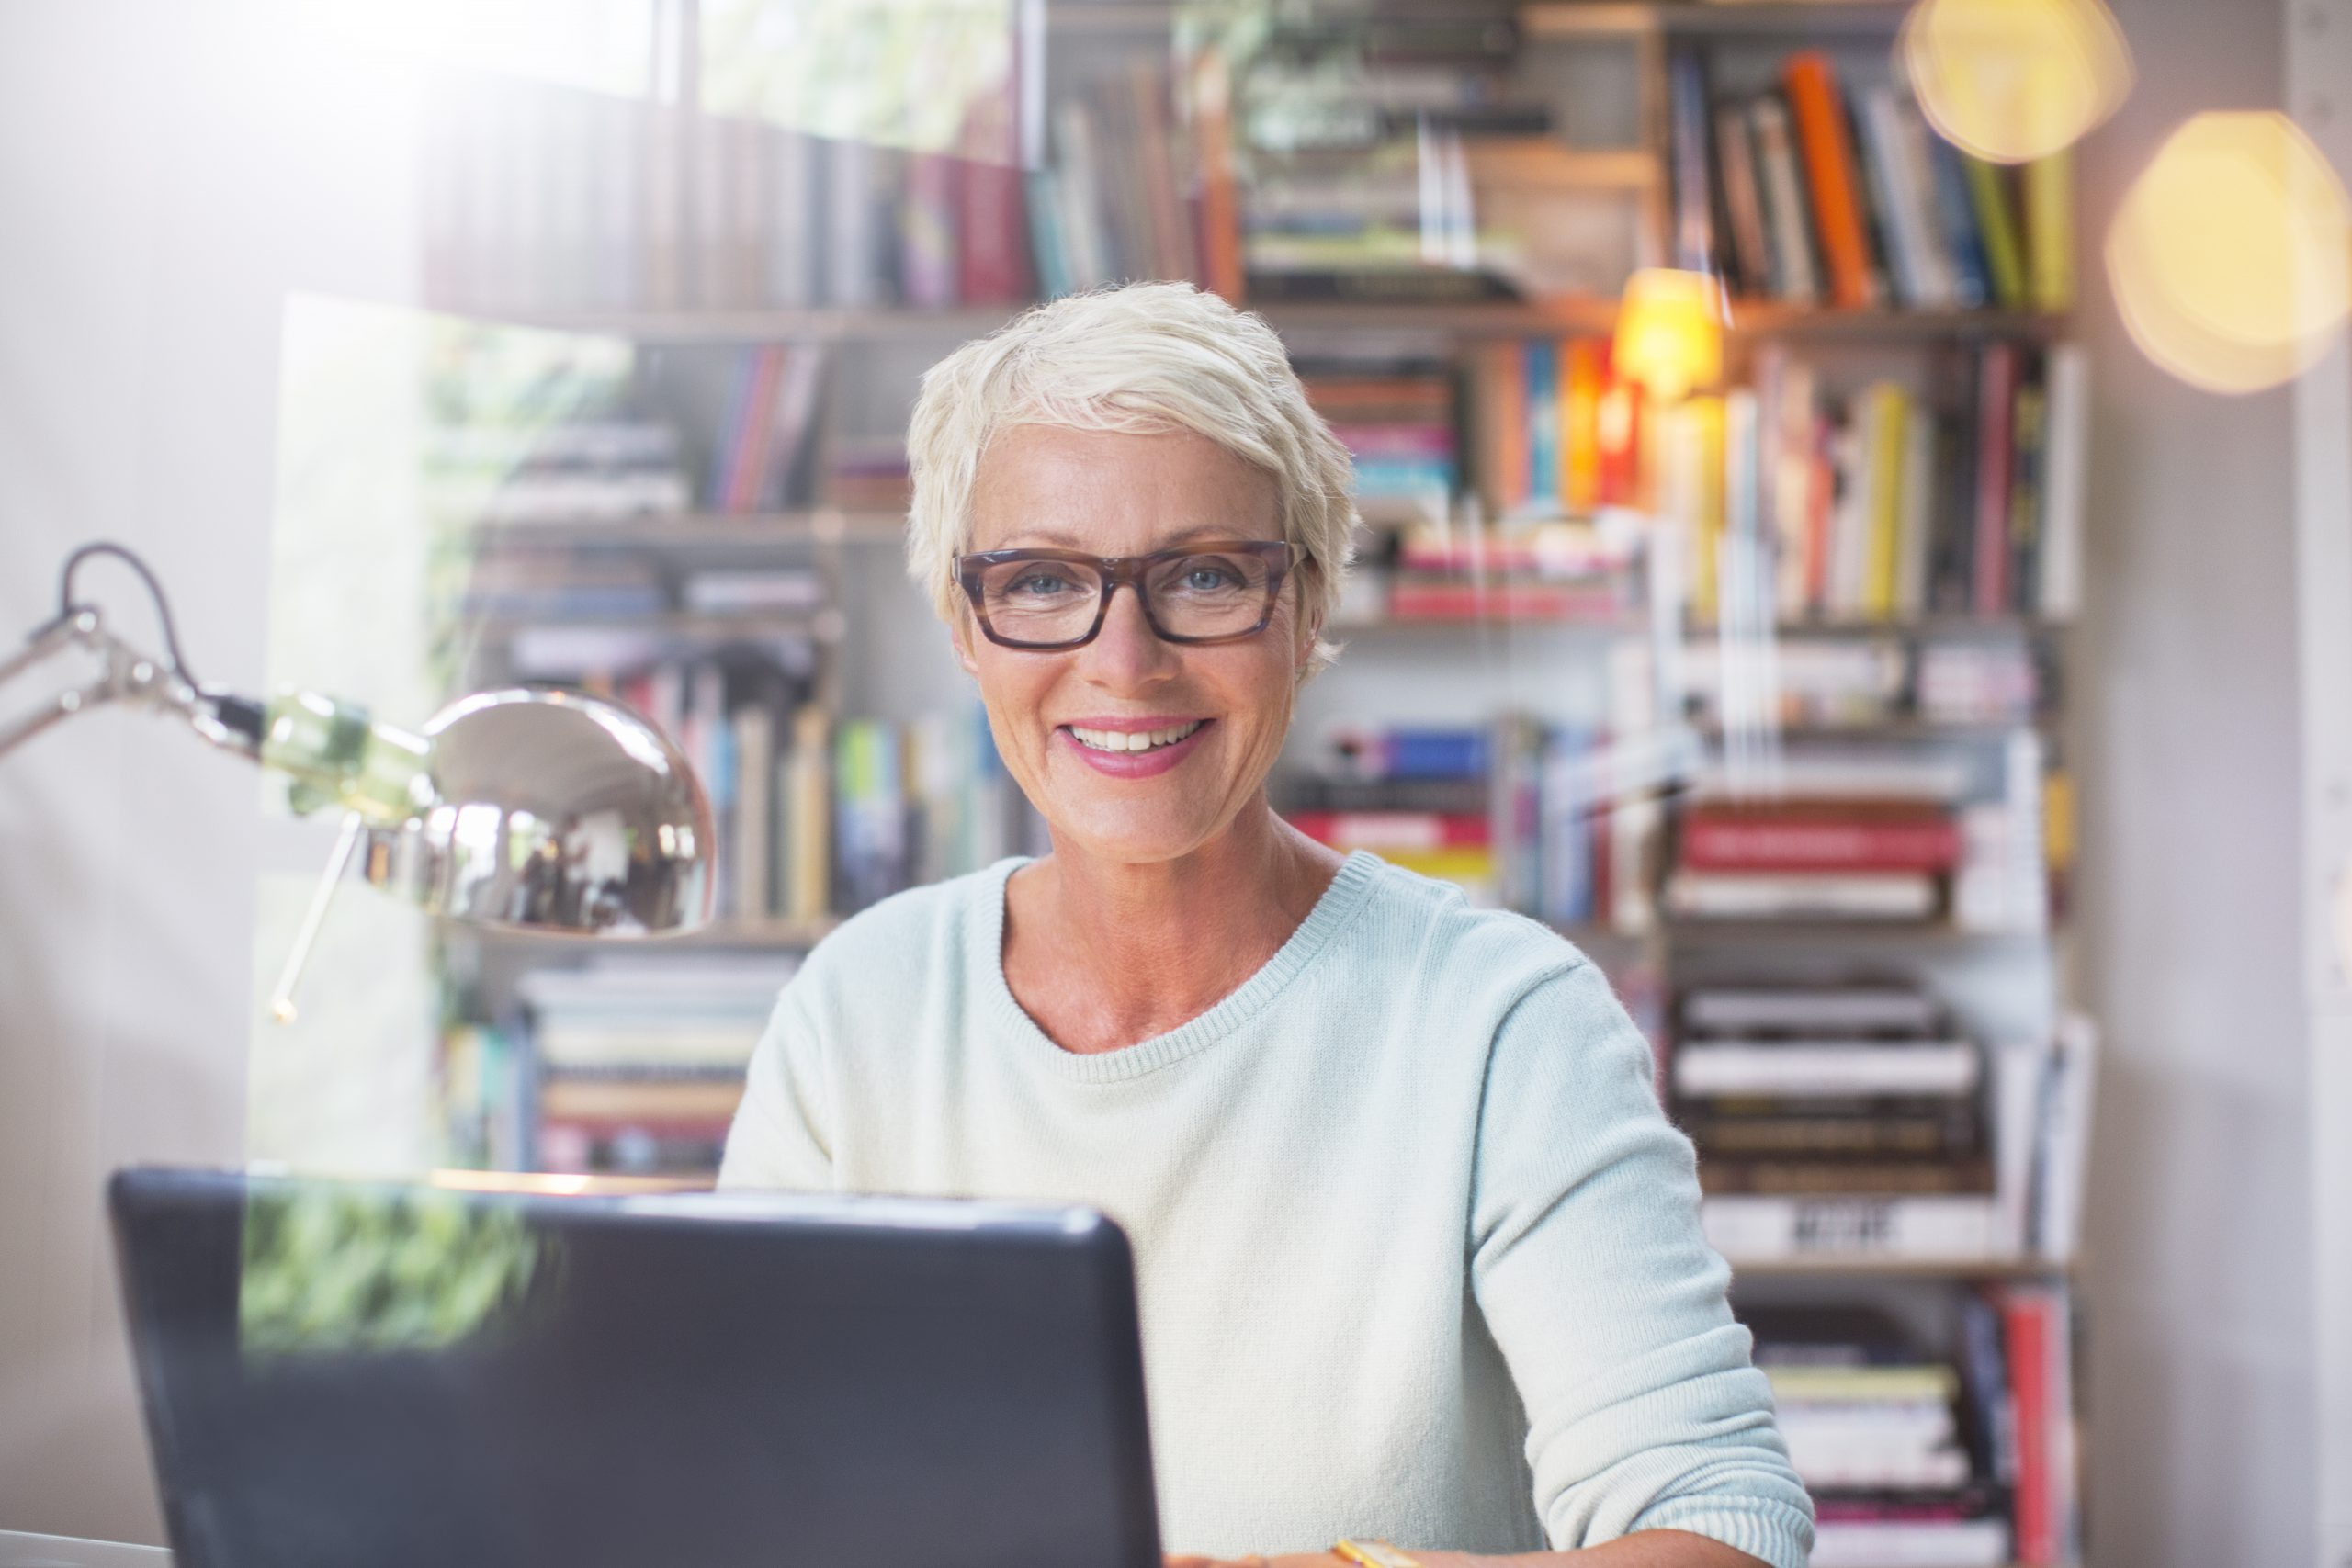 Elderly female with glasses sitting in front of laptop with books in the background